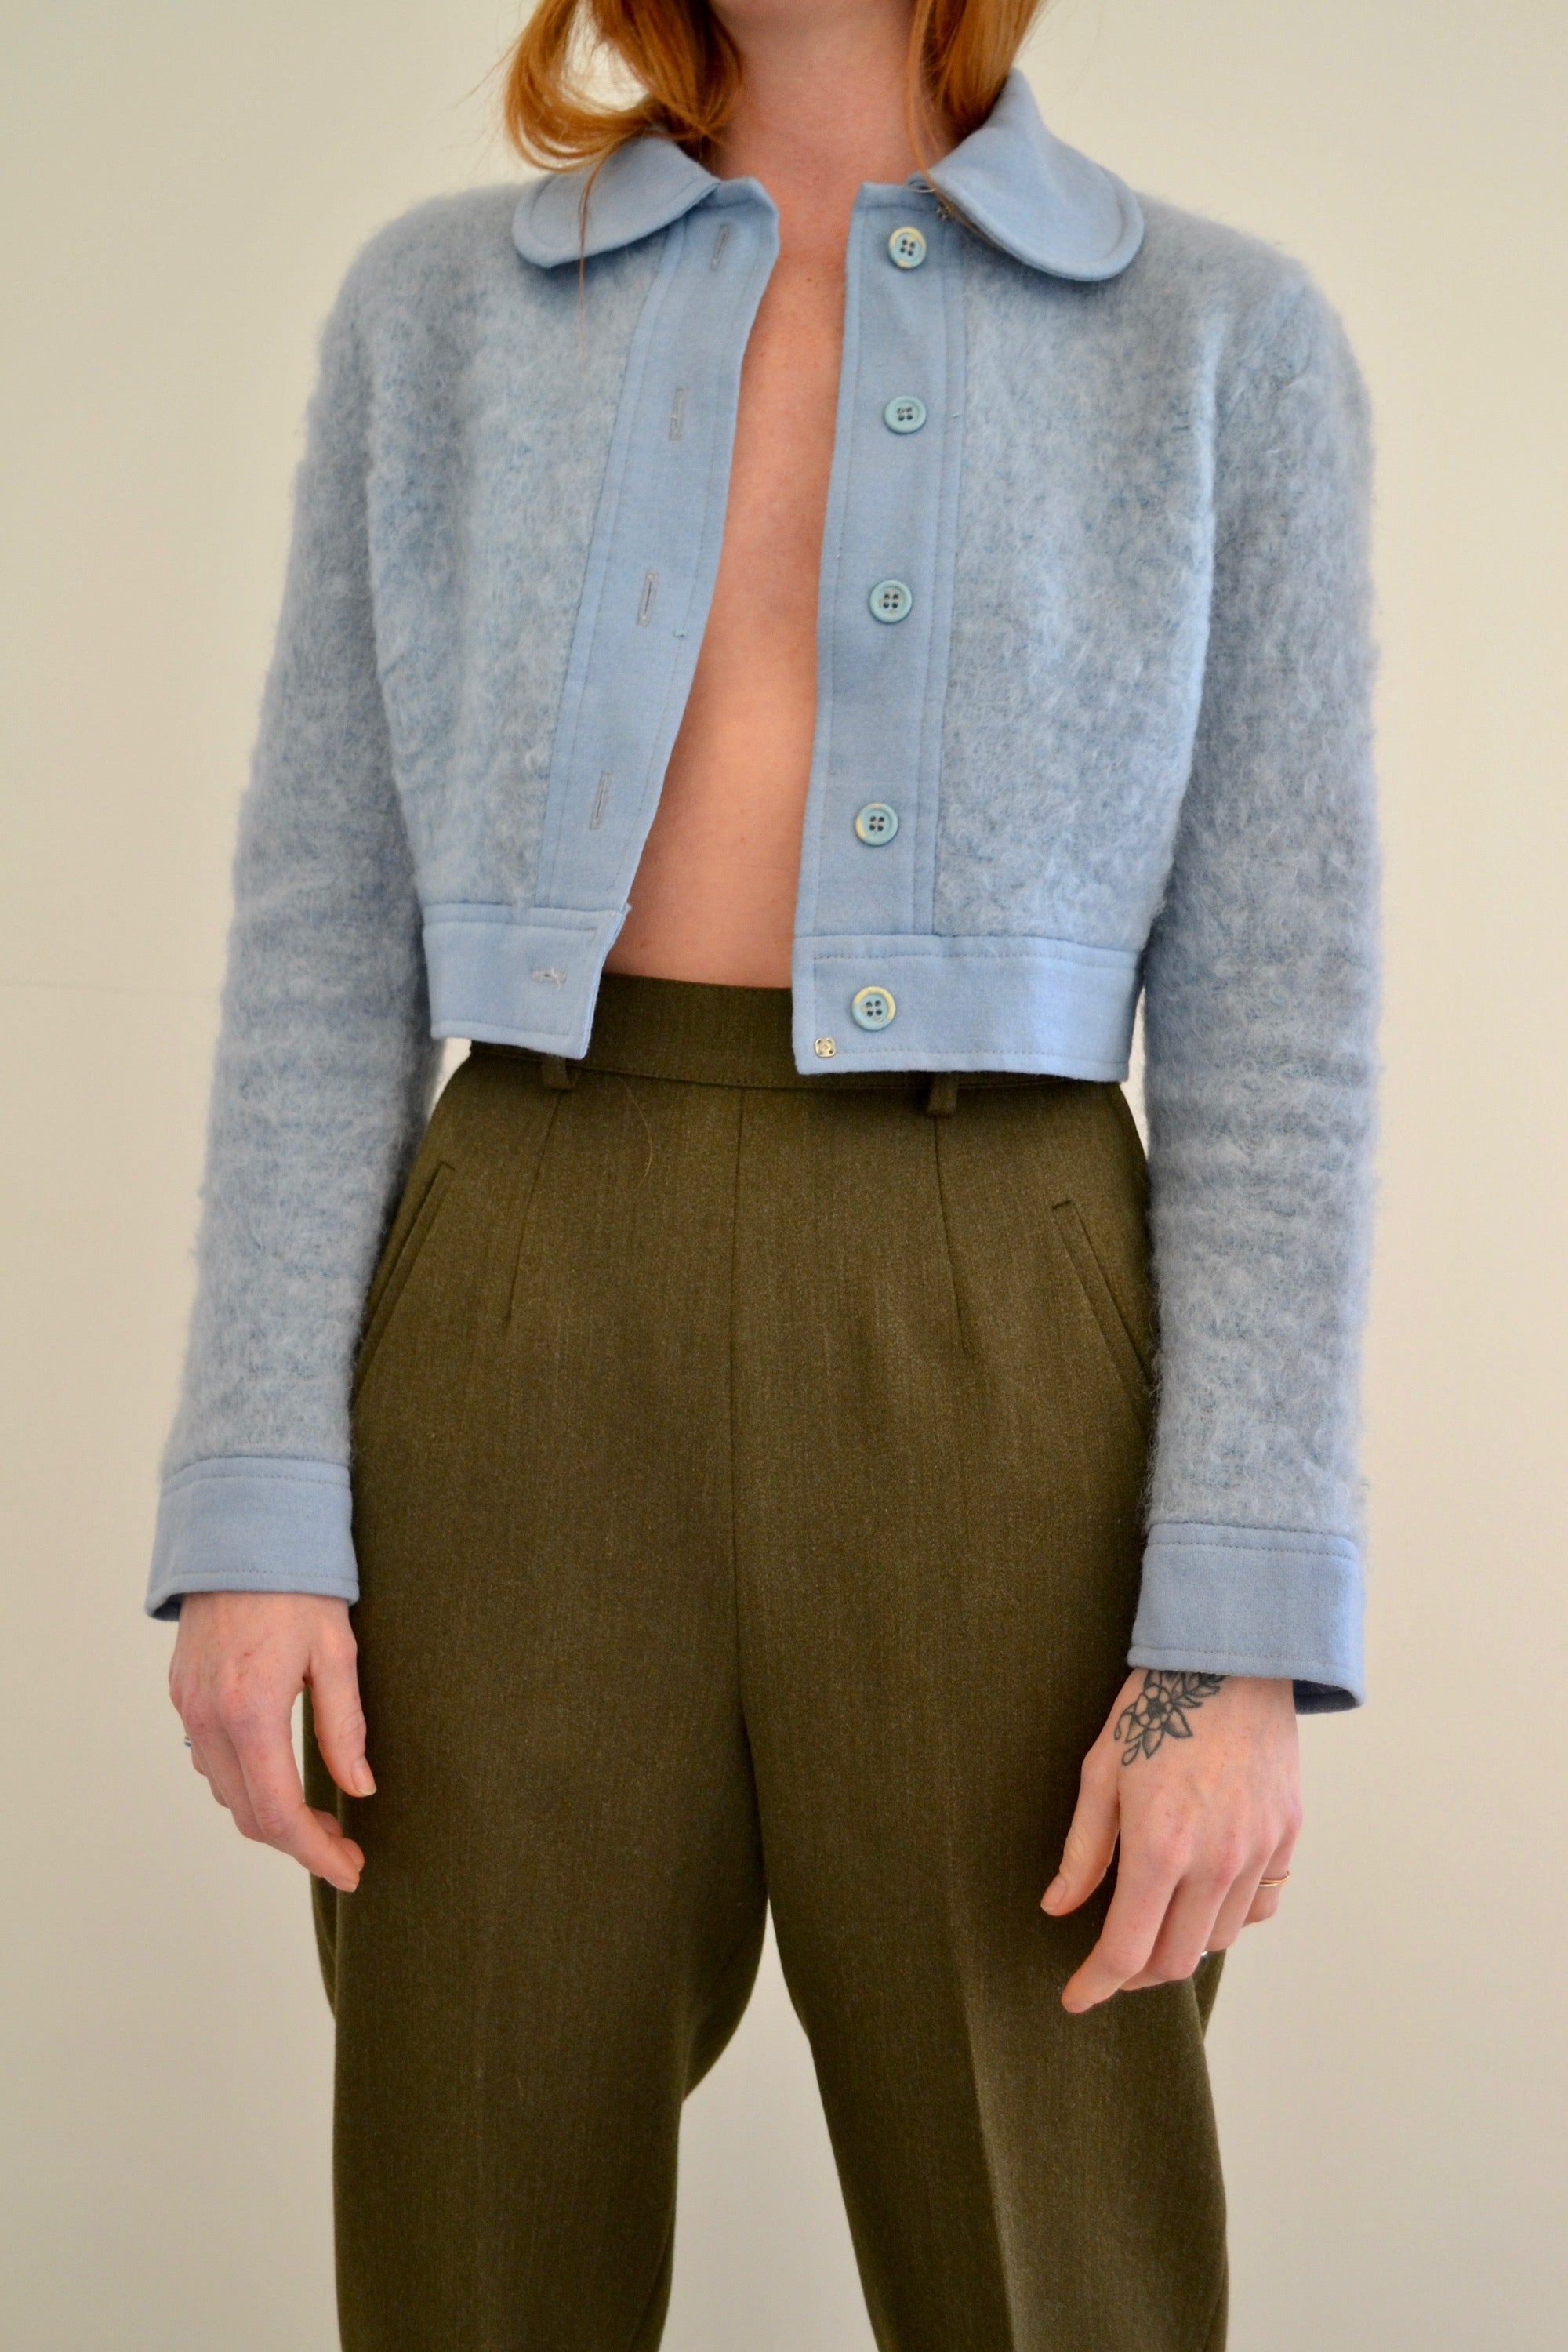 1970's Robins Egg Blue Cropped Wool Jacket